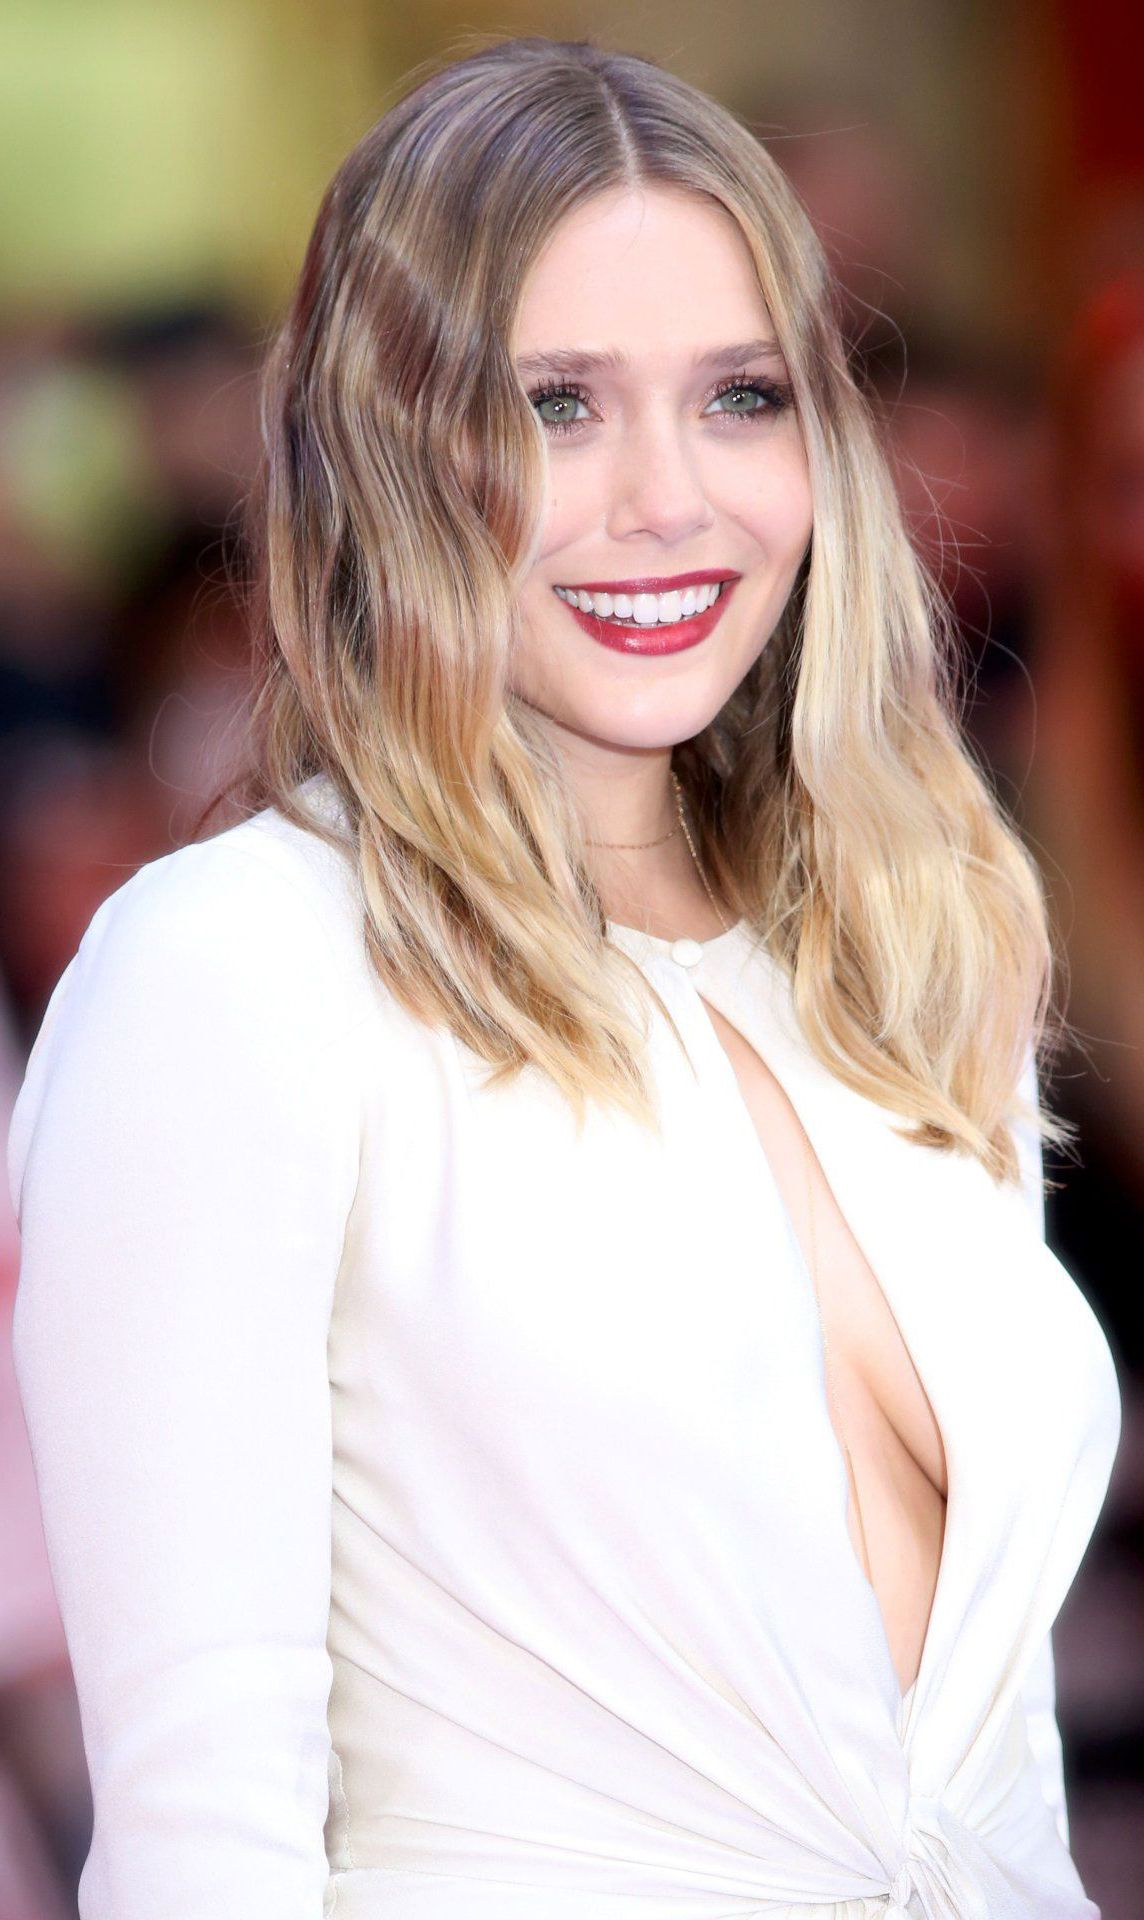 Elizabeth Olsen Beautiful Look Elizabeth Olsen Elizabeth Olsen Scarlet Witch Beauty